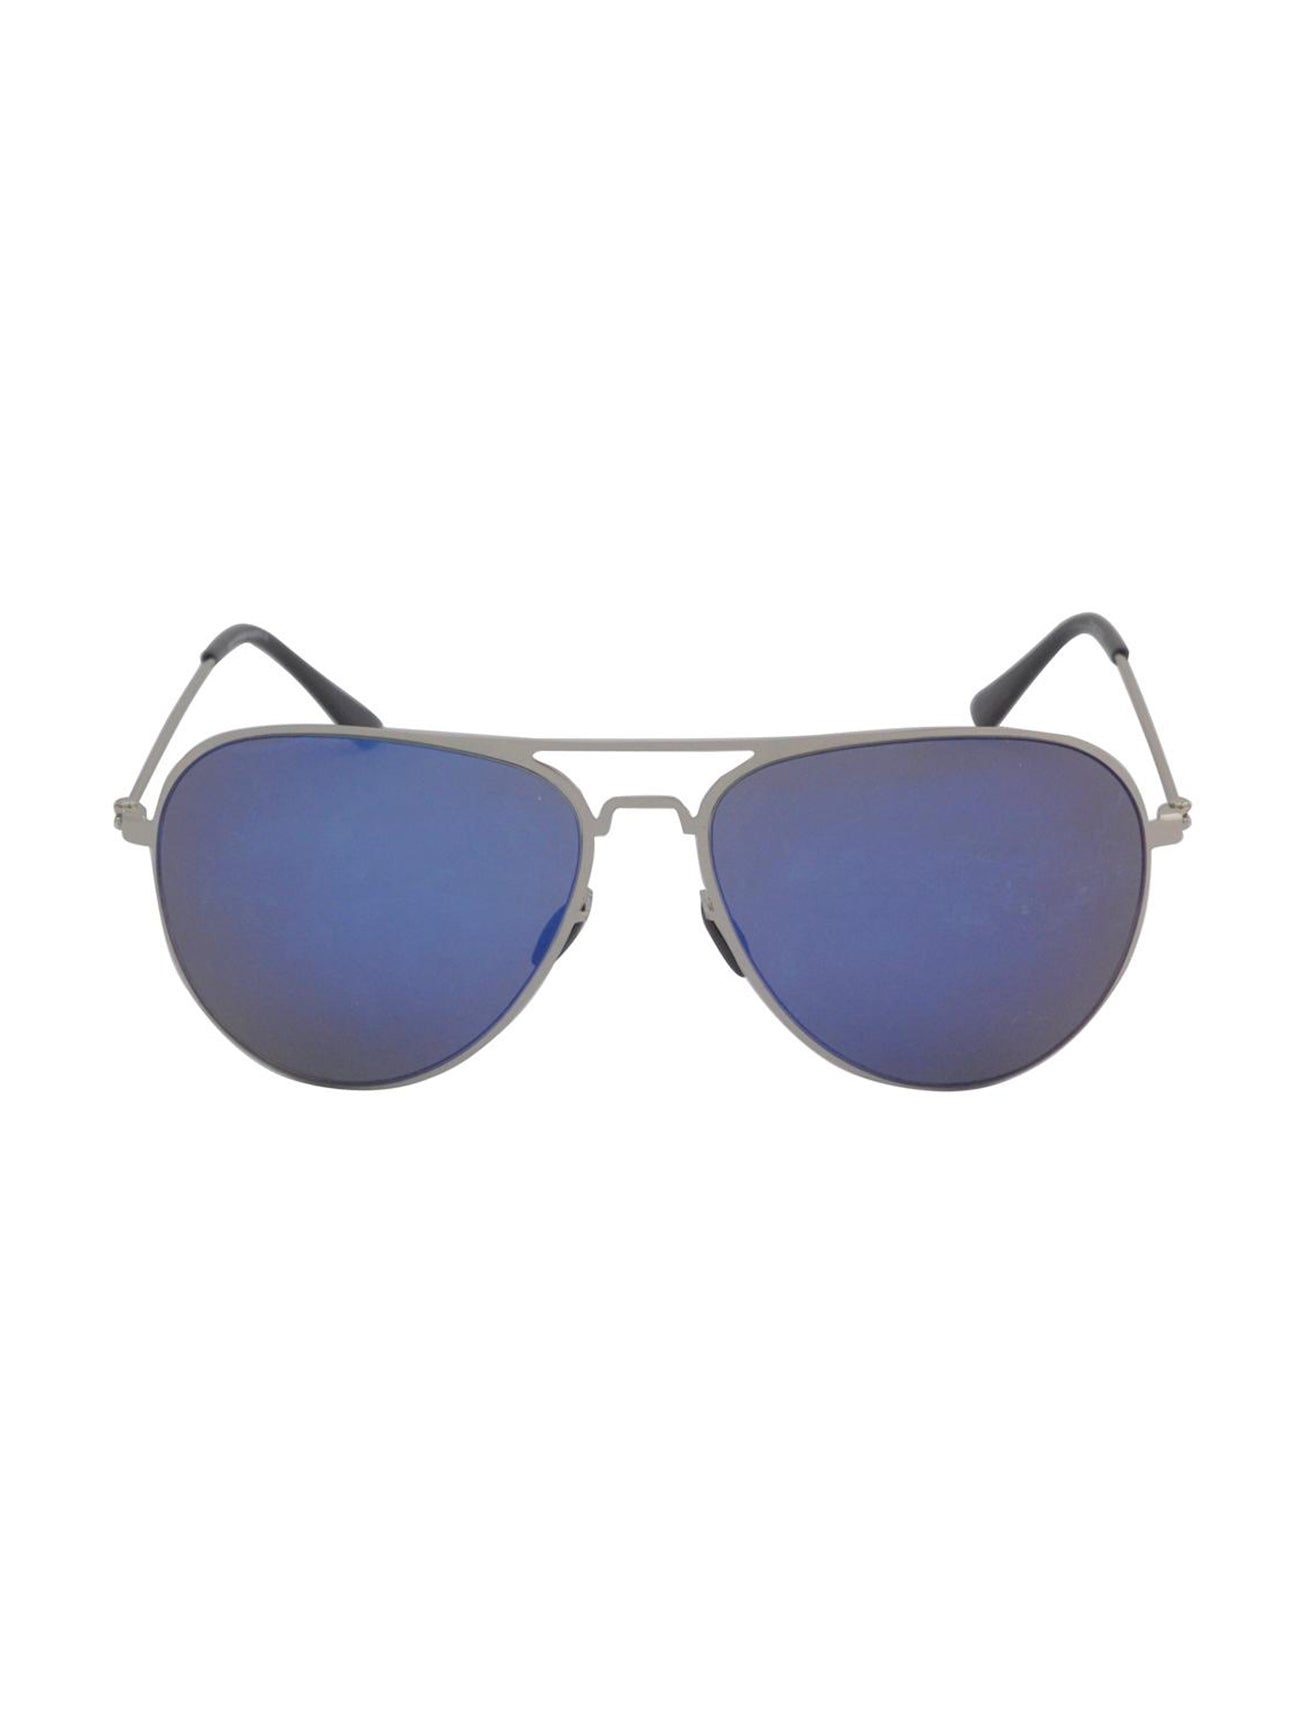 Classic  Blue Mirrored Aviator Sunglasses